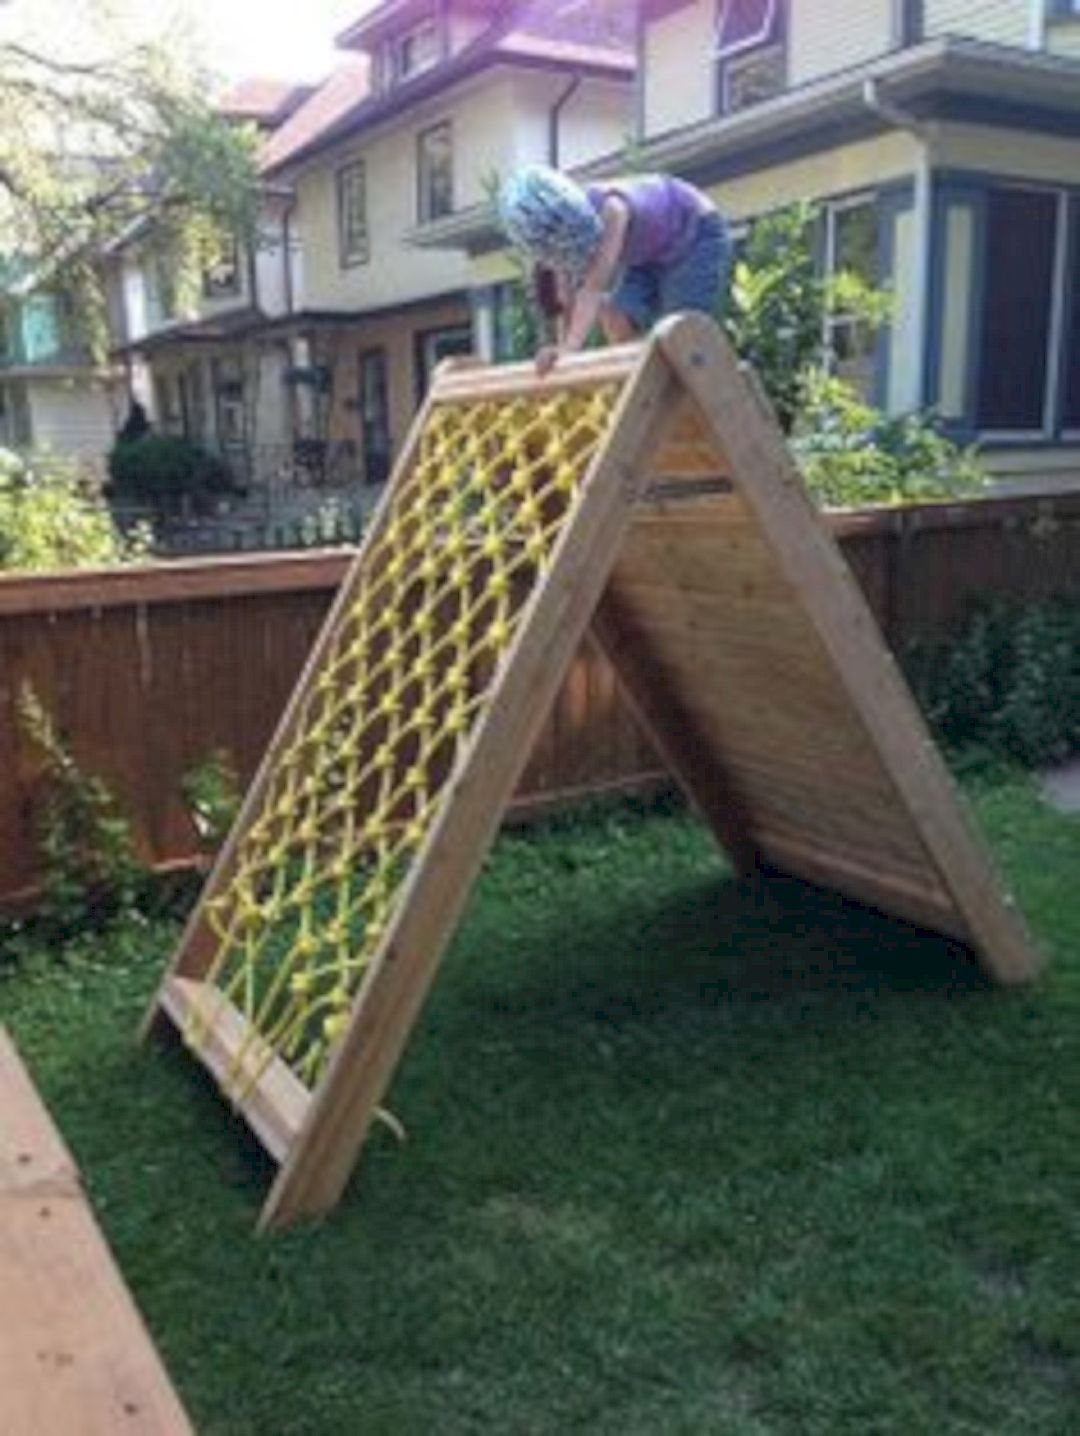 Some Nice DIY Kids Playground Ideas for Your Backyard  https://www.futuristarchitecture - Some Nice DIY Kids Playground Ideas For Your Backyard Brilliant